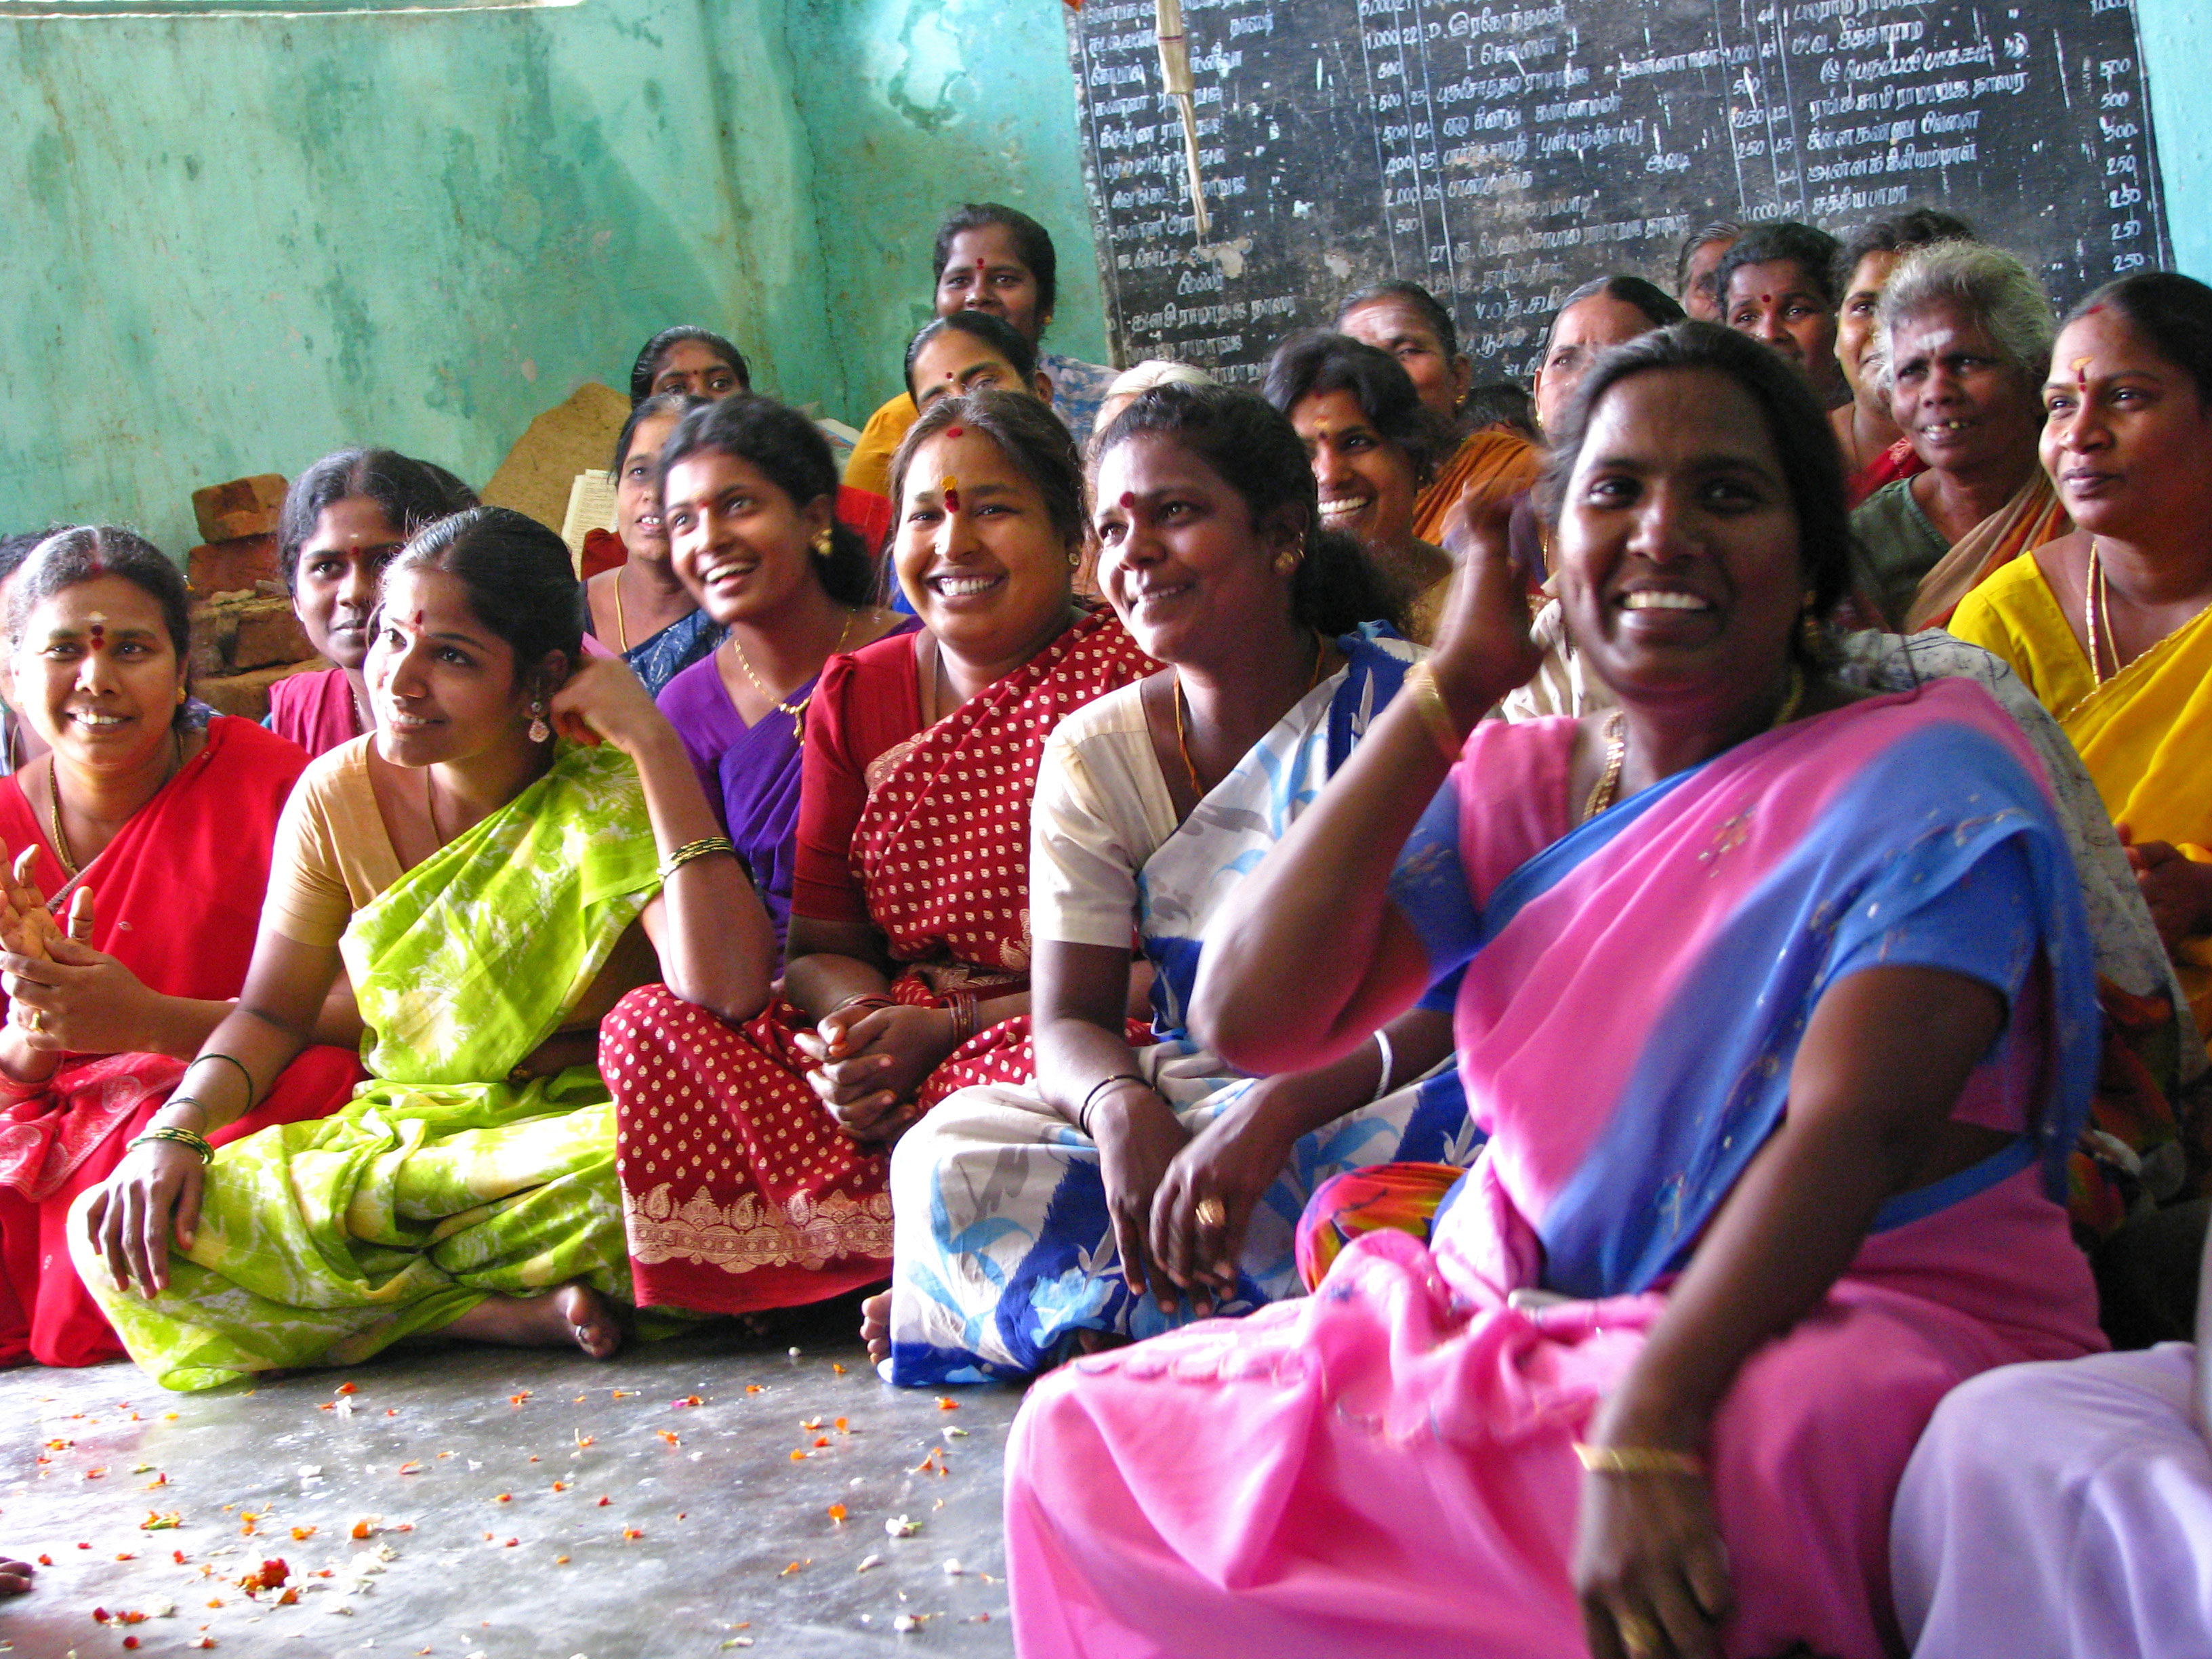 ICNL 2009-2010 Annual Report cover photo - A women's savings group meeting